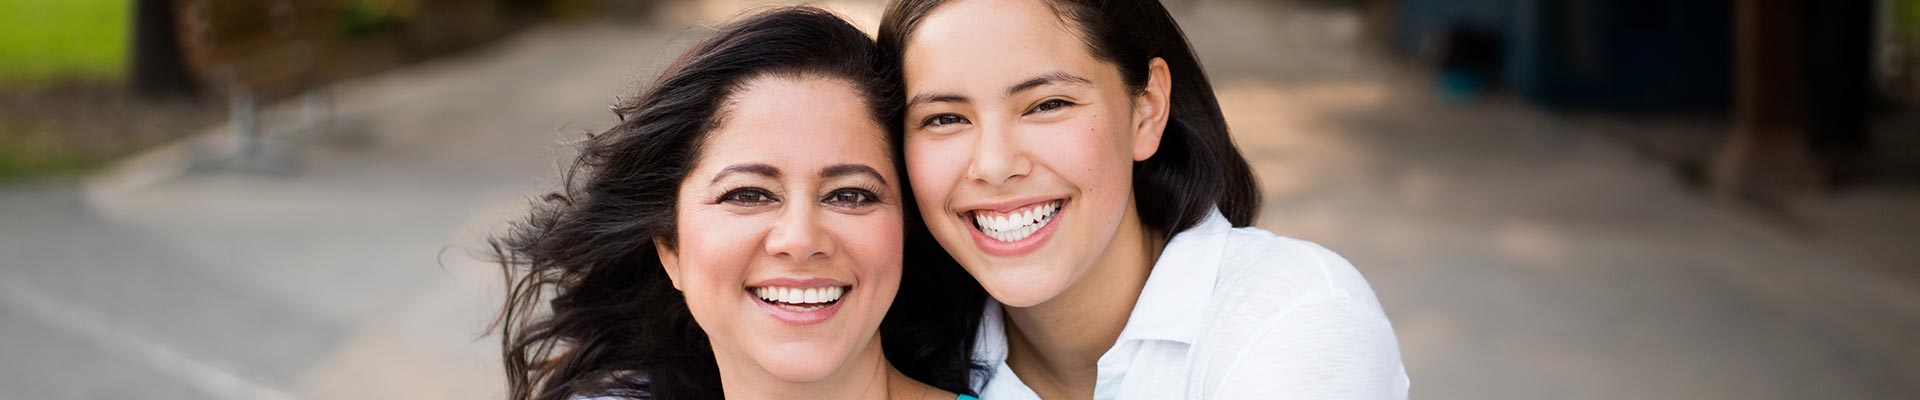 Invisalign Nebraska Orthodontics Lincoln NE